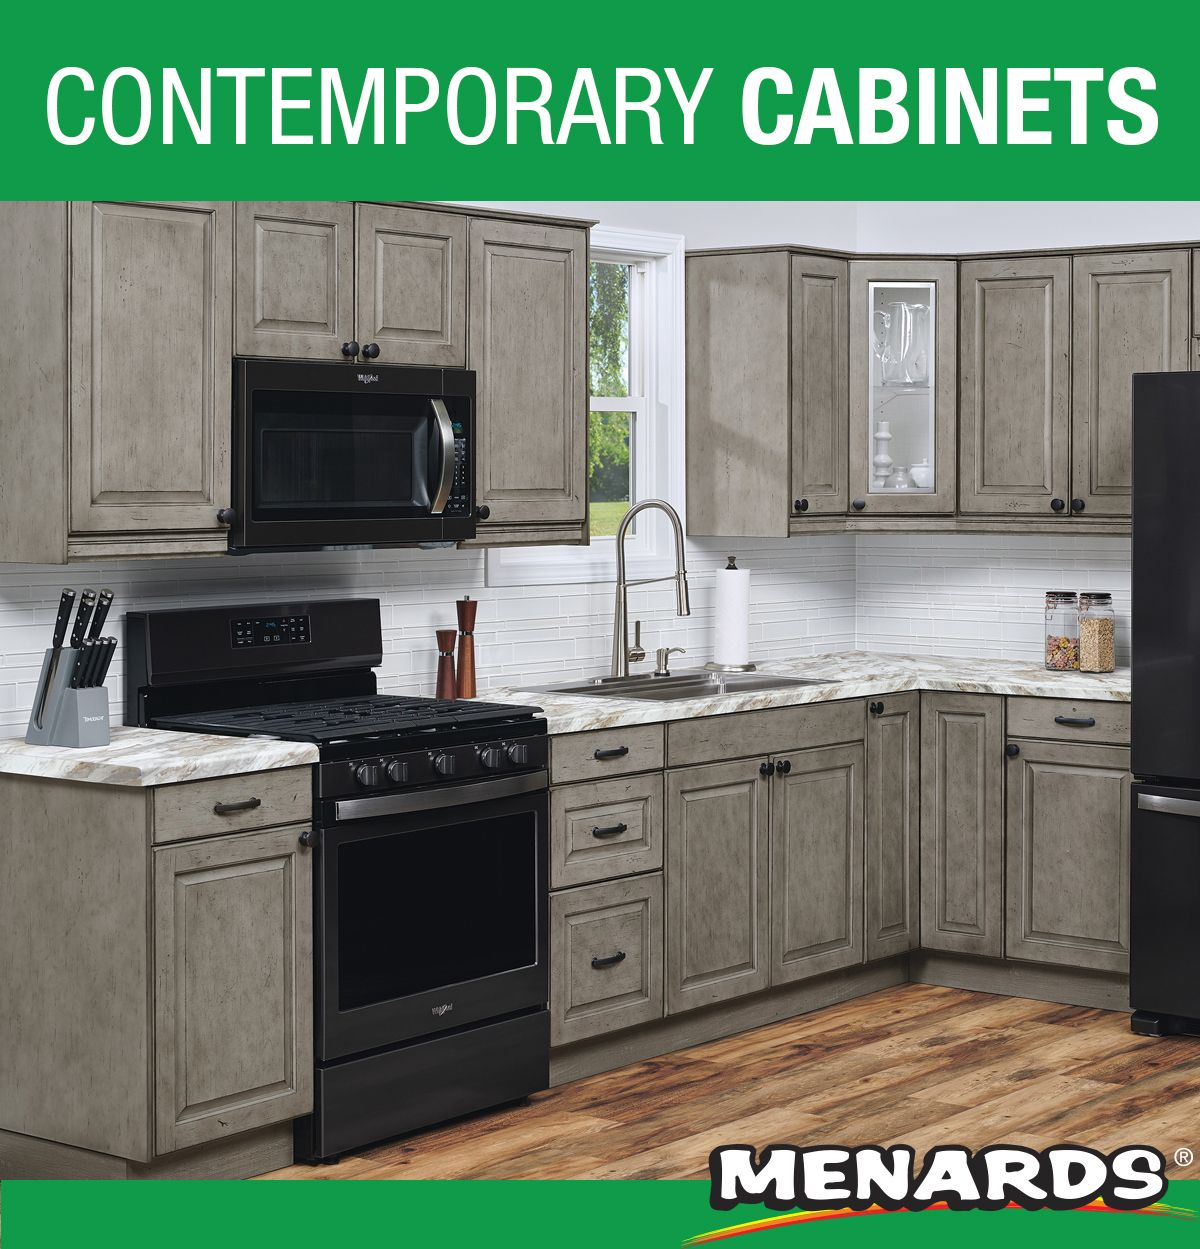 Klearvue Cabinetry Is A Menards Exclusive Cabinetry Program That Gives You The Look And Feel Of Custom Contemporary Cabinets L Shaped Kitchen Kitchen Cabinets